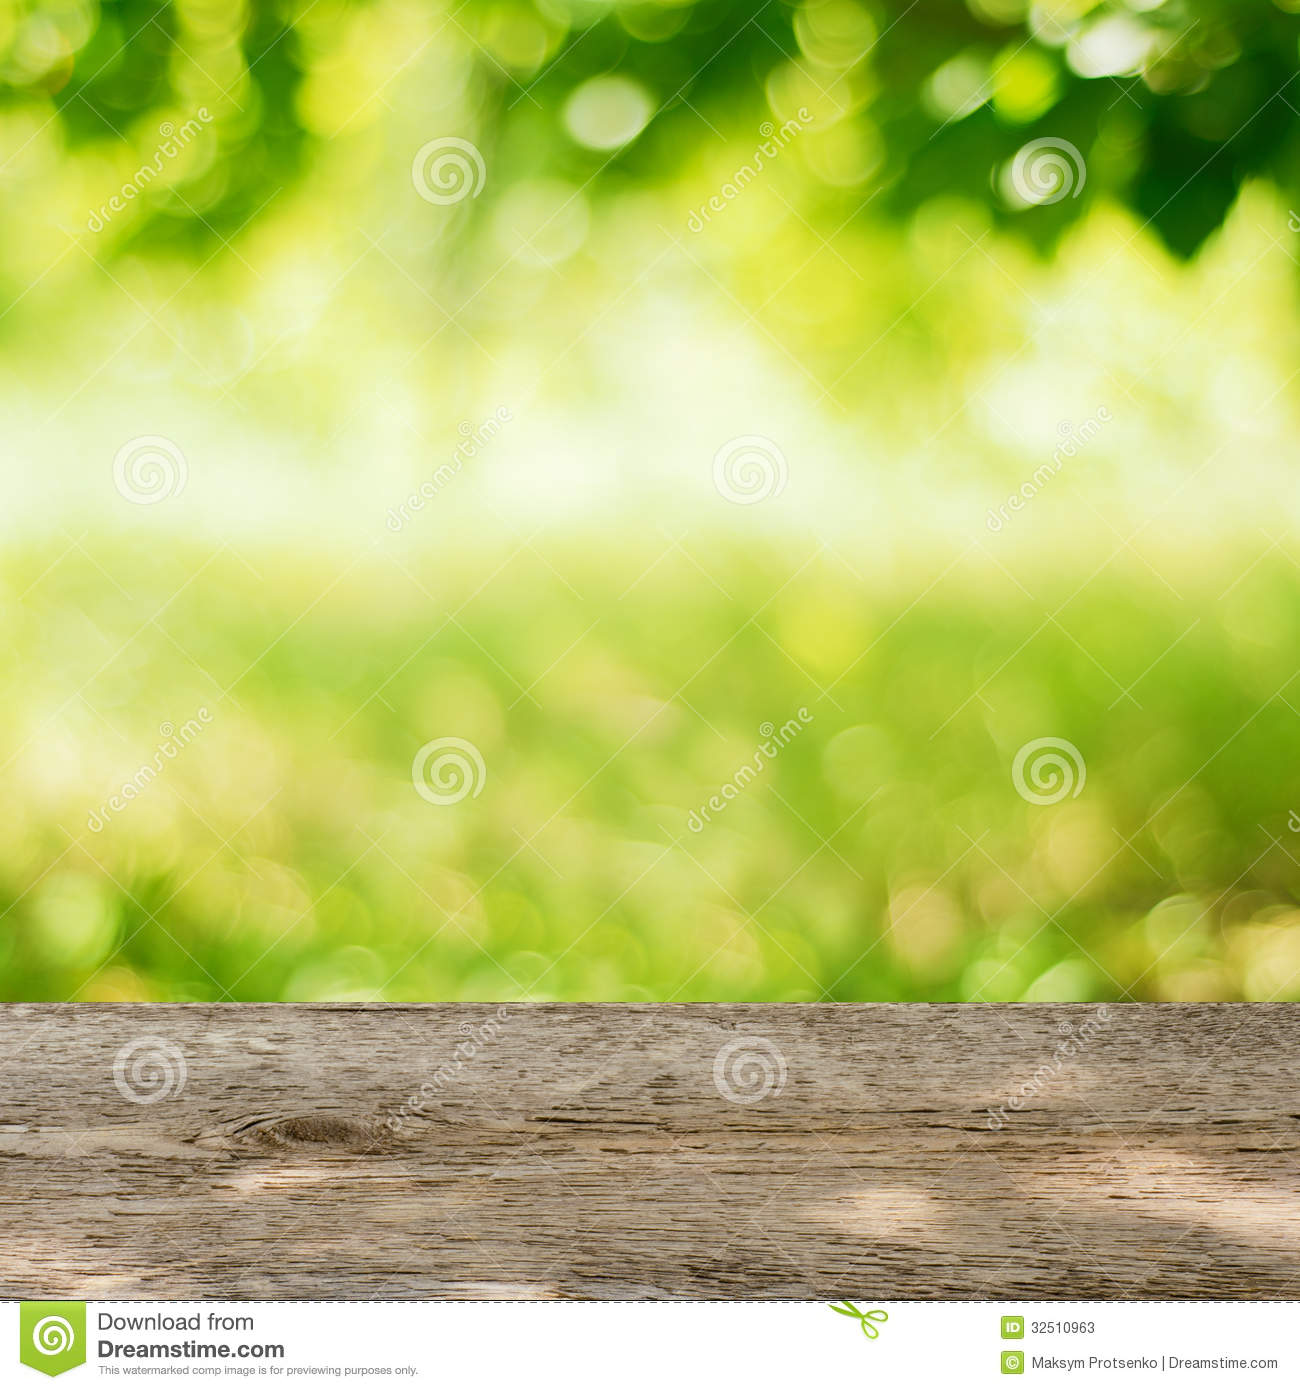 Empty Wooden Table In The Garden With Bright Green Background Stock ...